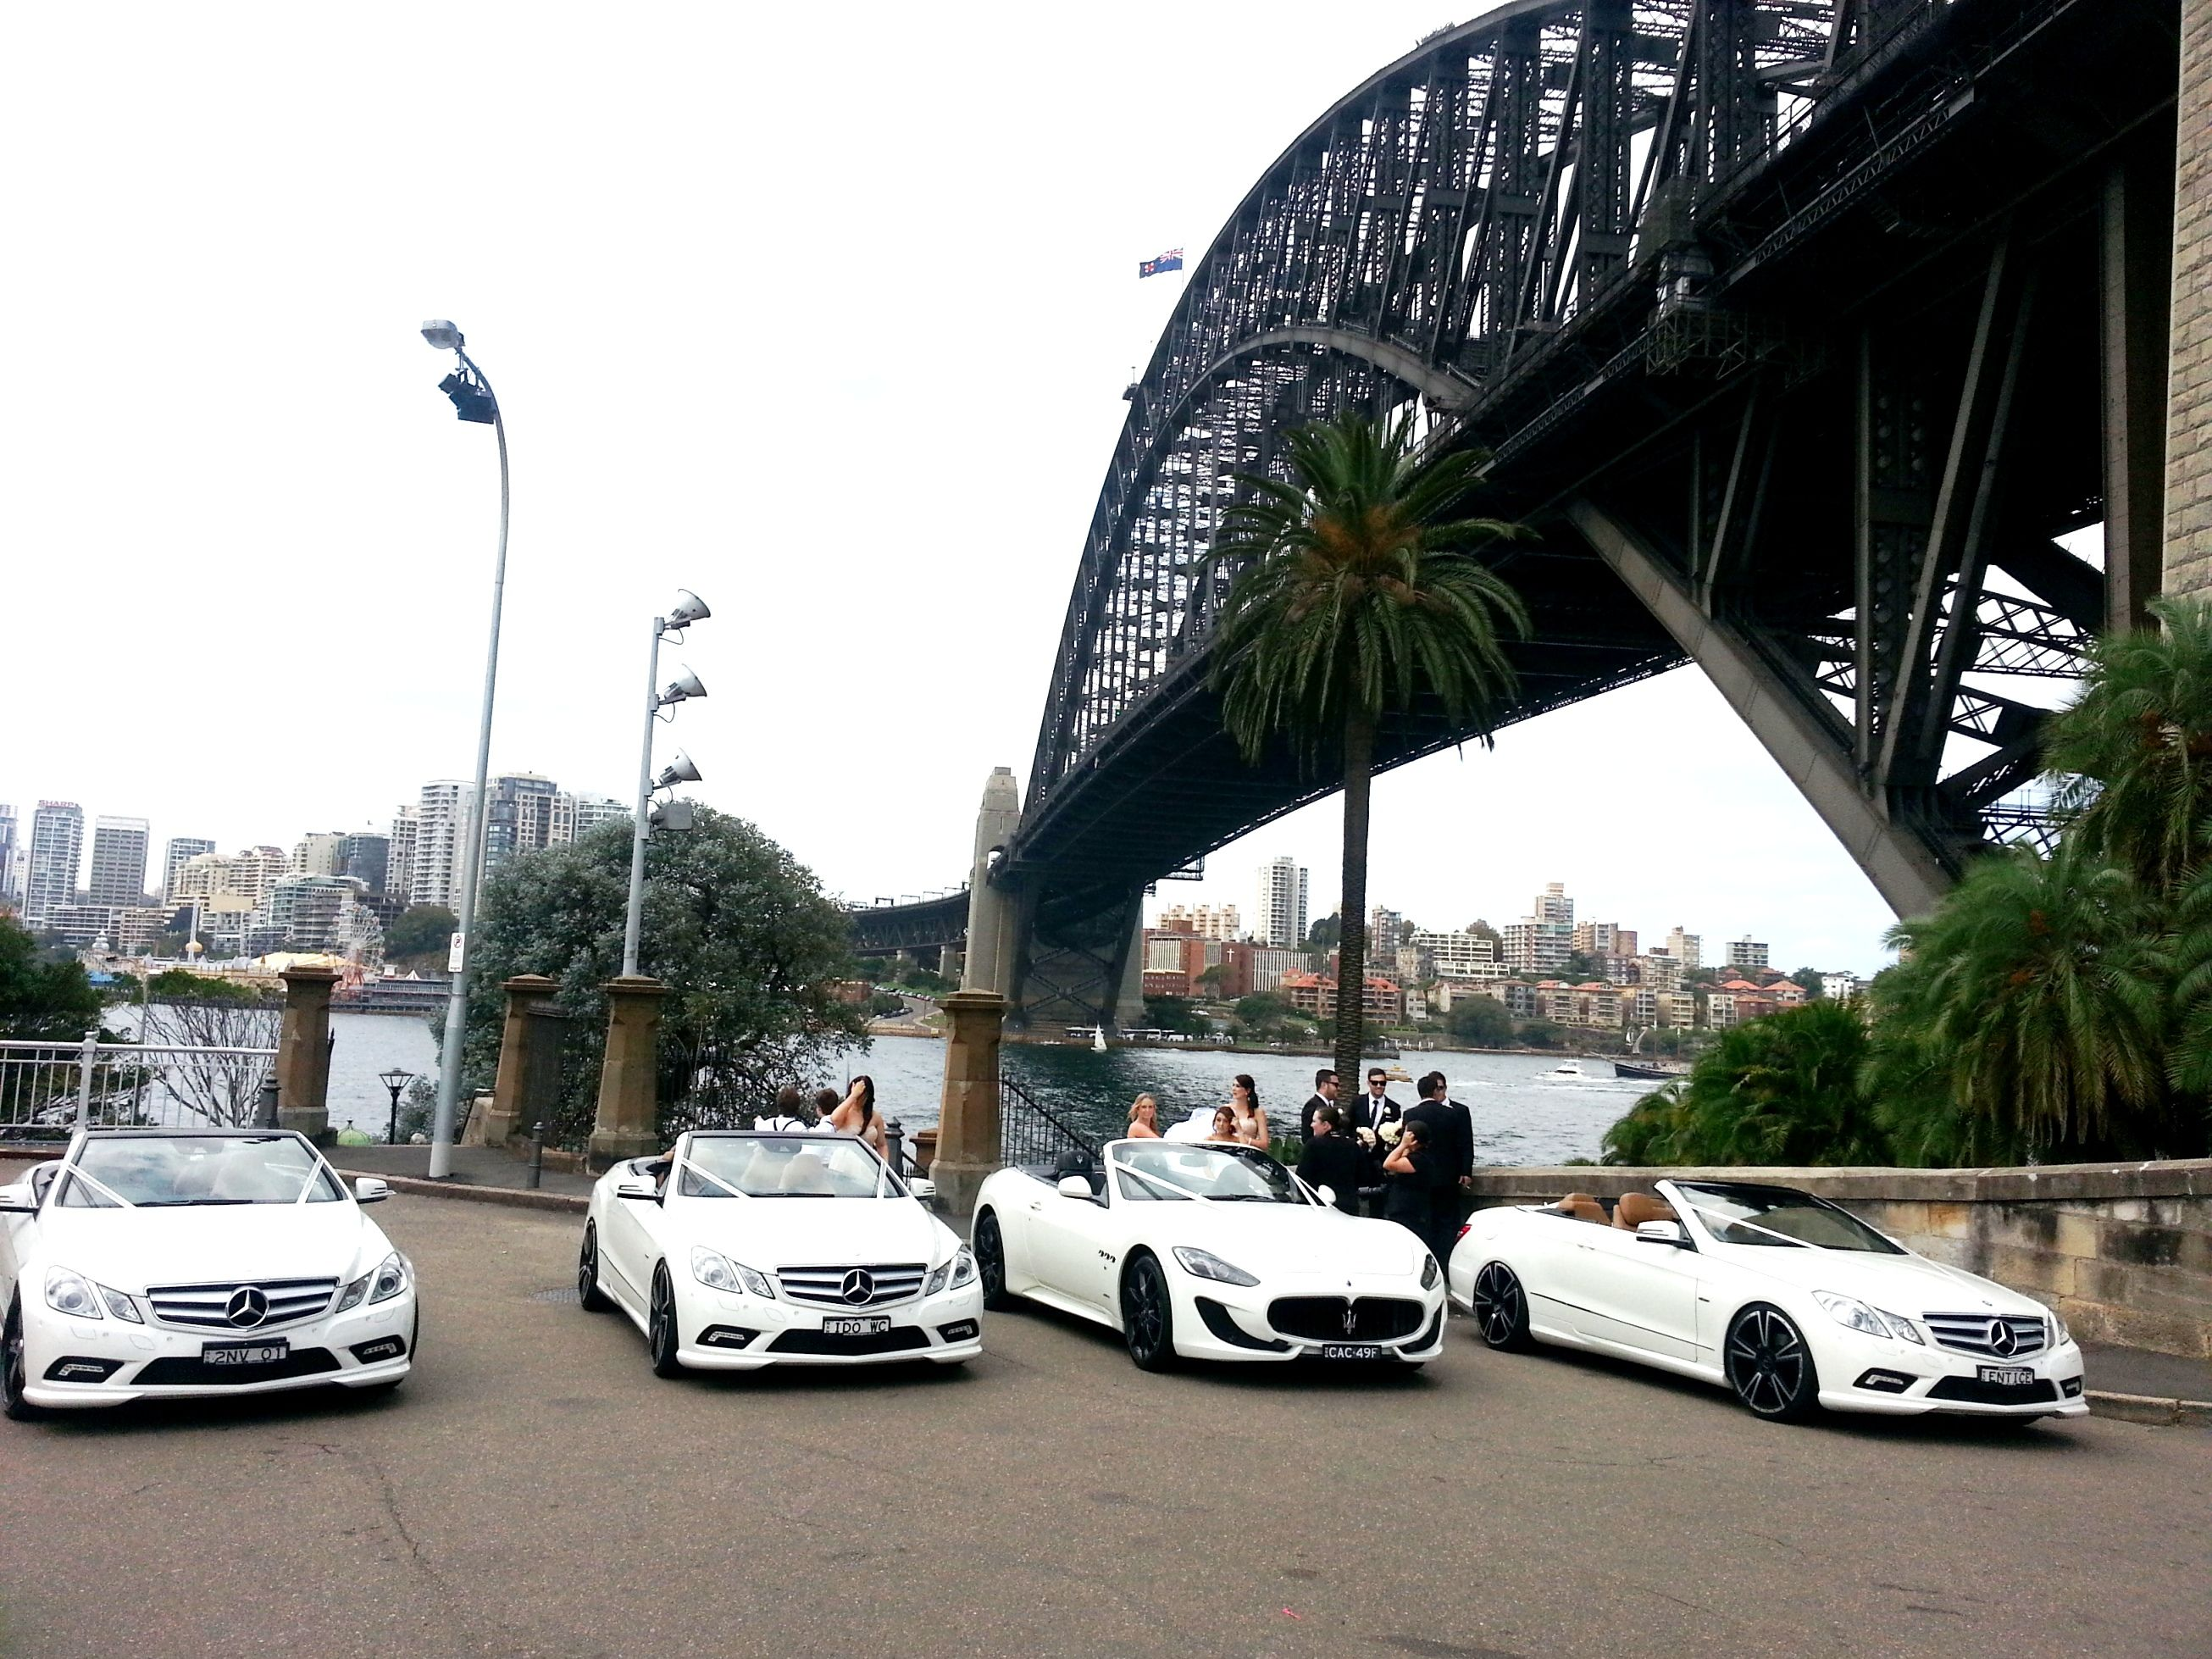 Australias Maserati Hire Company Sydney Offering Wedding Cars If You Are Looking For A Cheap Then Your Search